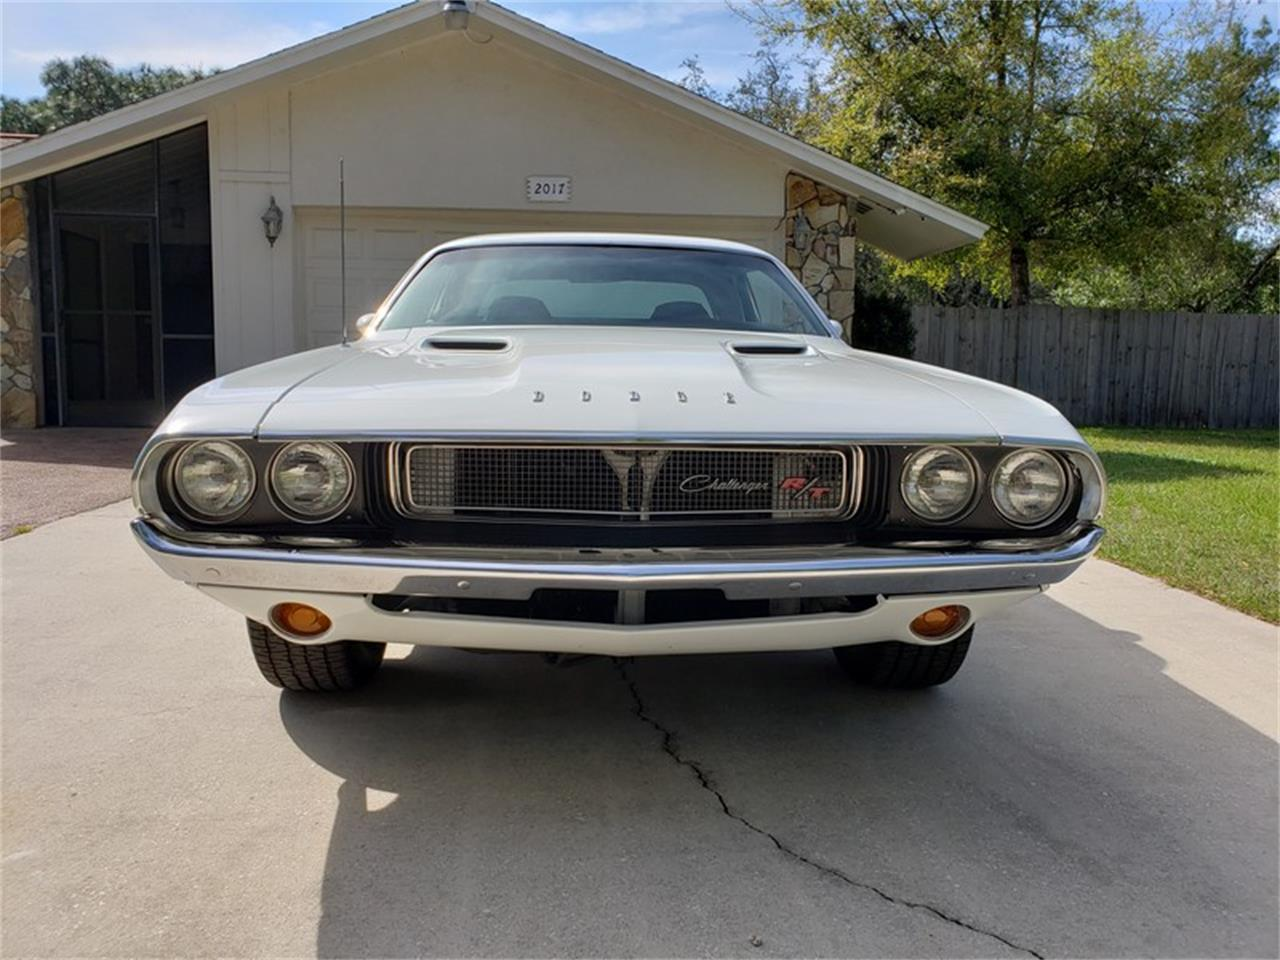 Large Picture of 1970 Challenger R/T - $69,500.00 - Q72C